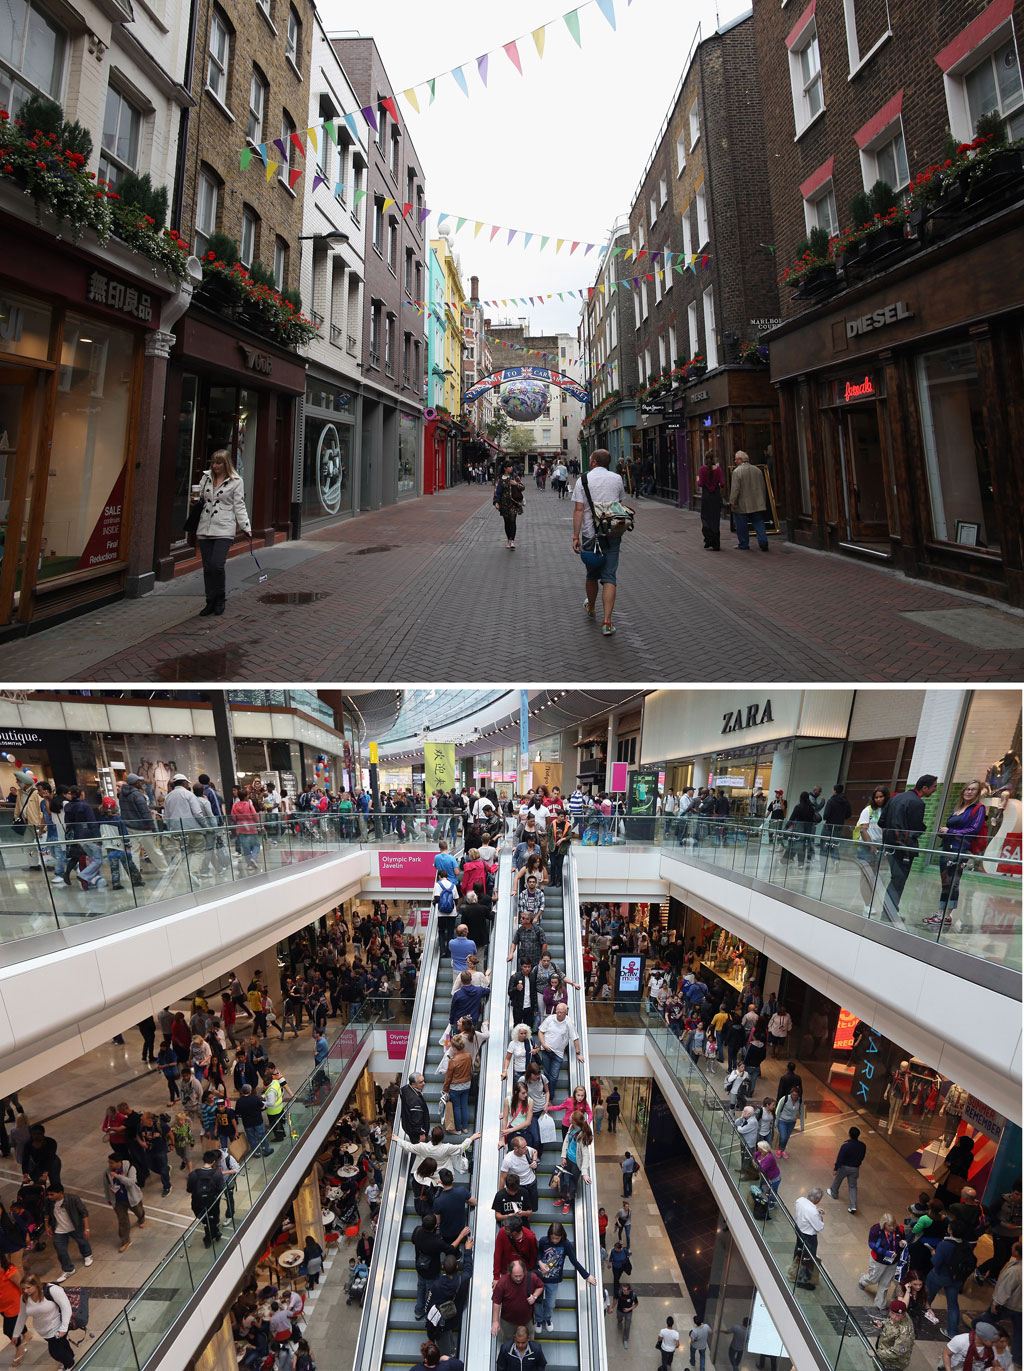 London's streets lay quiet as visitors turn to shopping centre of Westfield next to the Olympic Park (G)